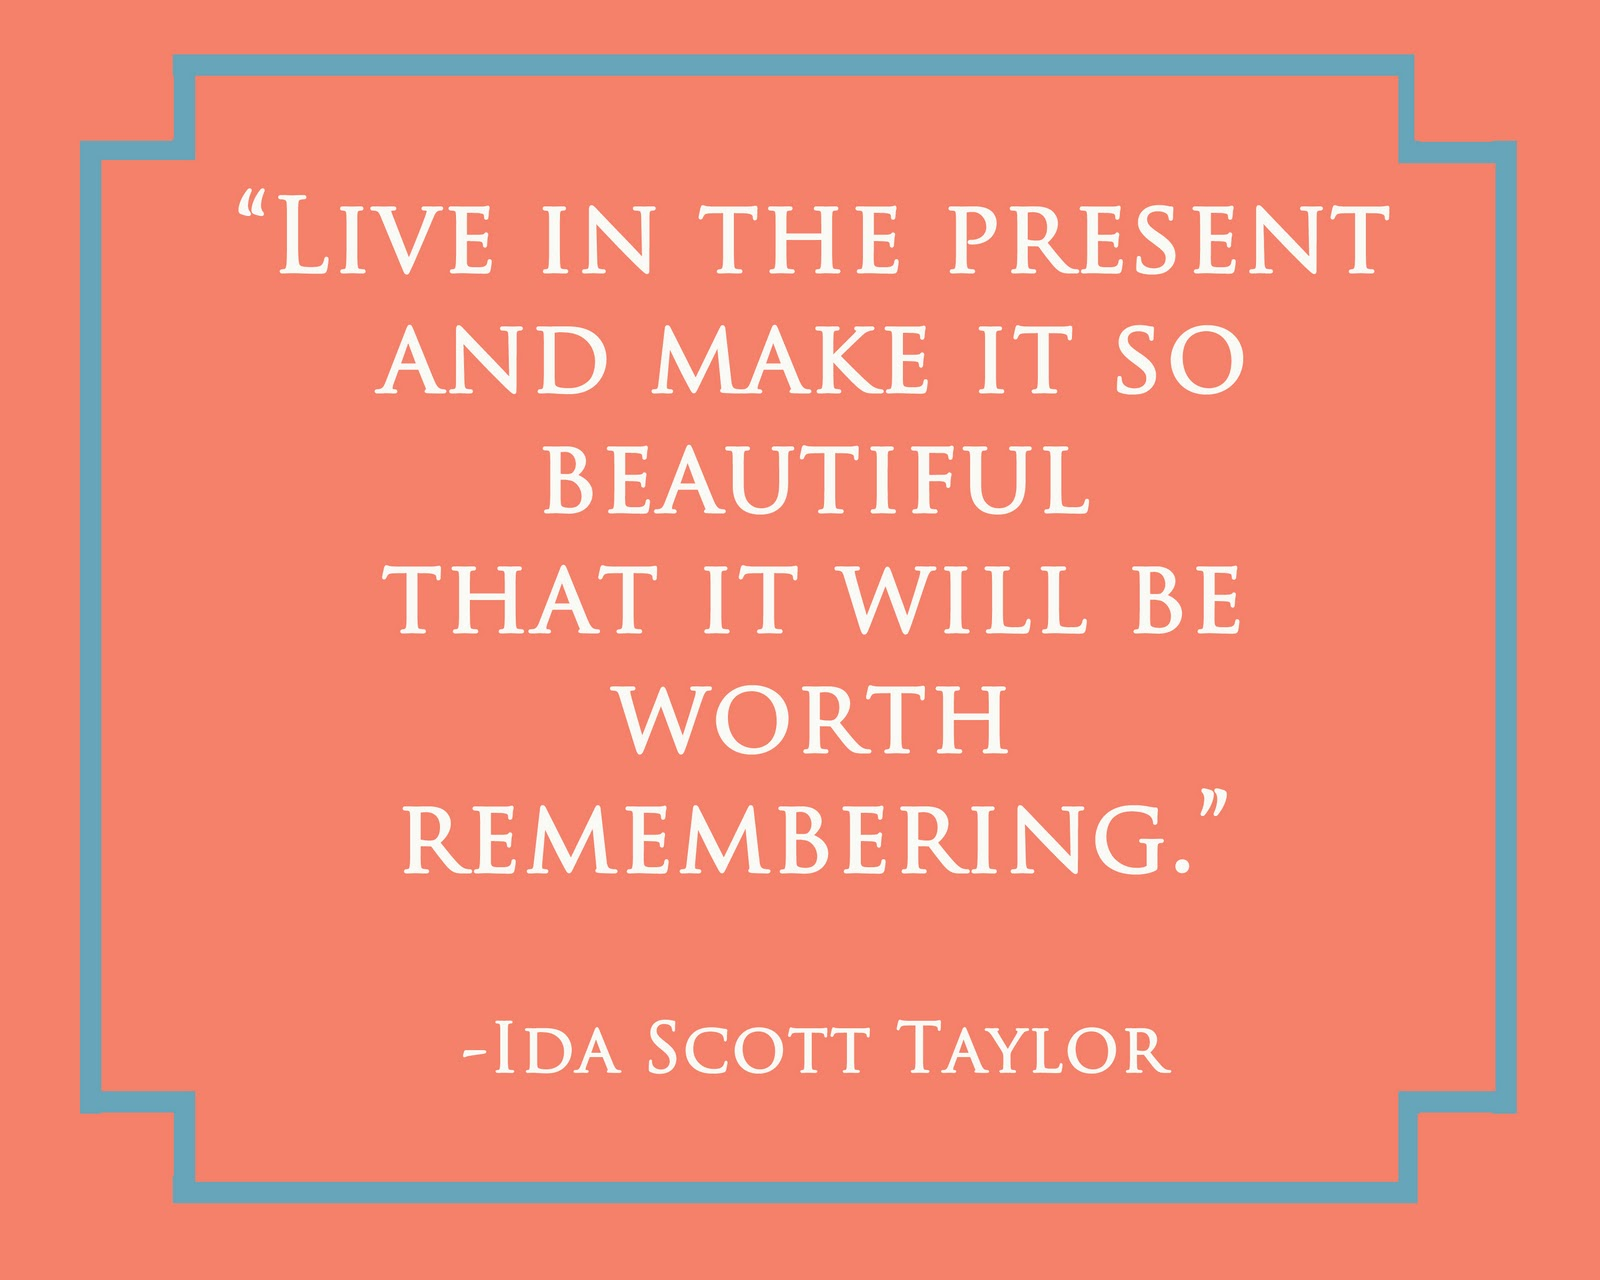 Live in the present, and make it so beautiful that it will be worth remembering. Ida Scott Taylor